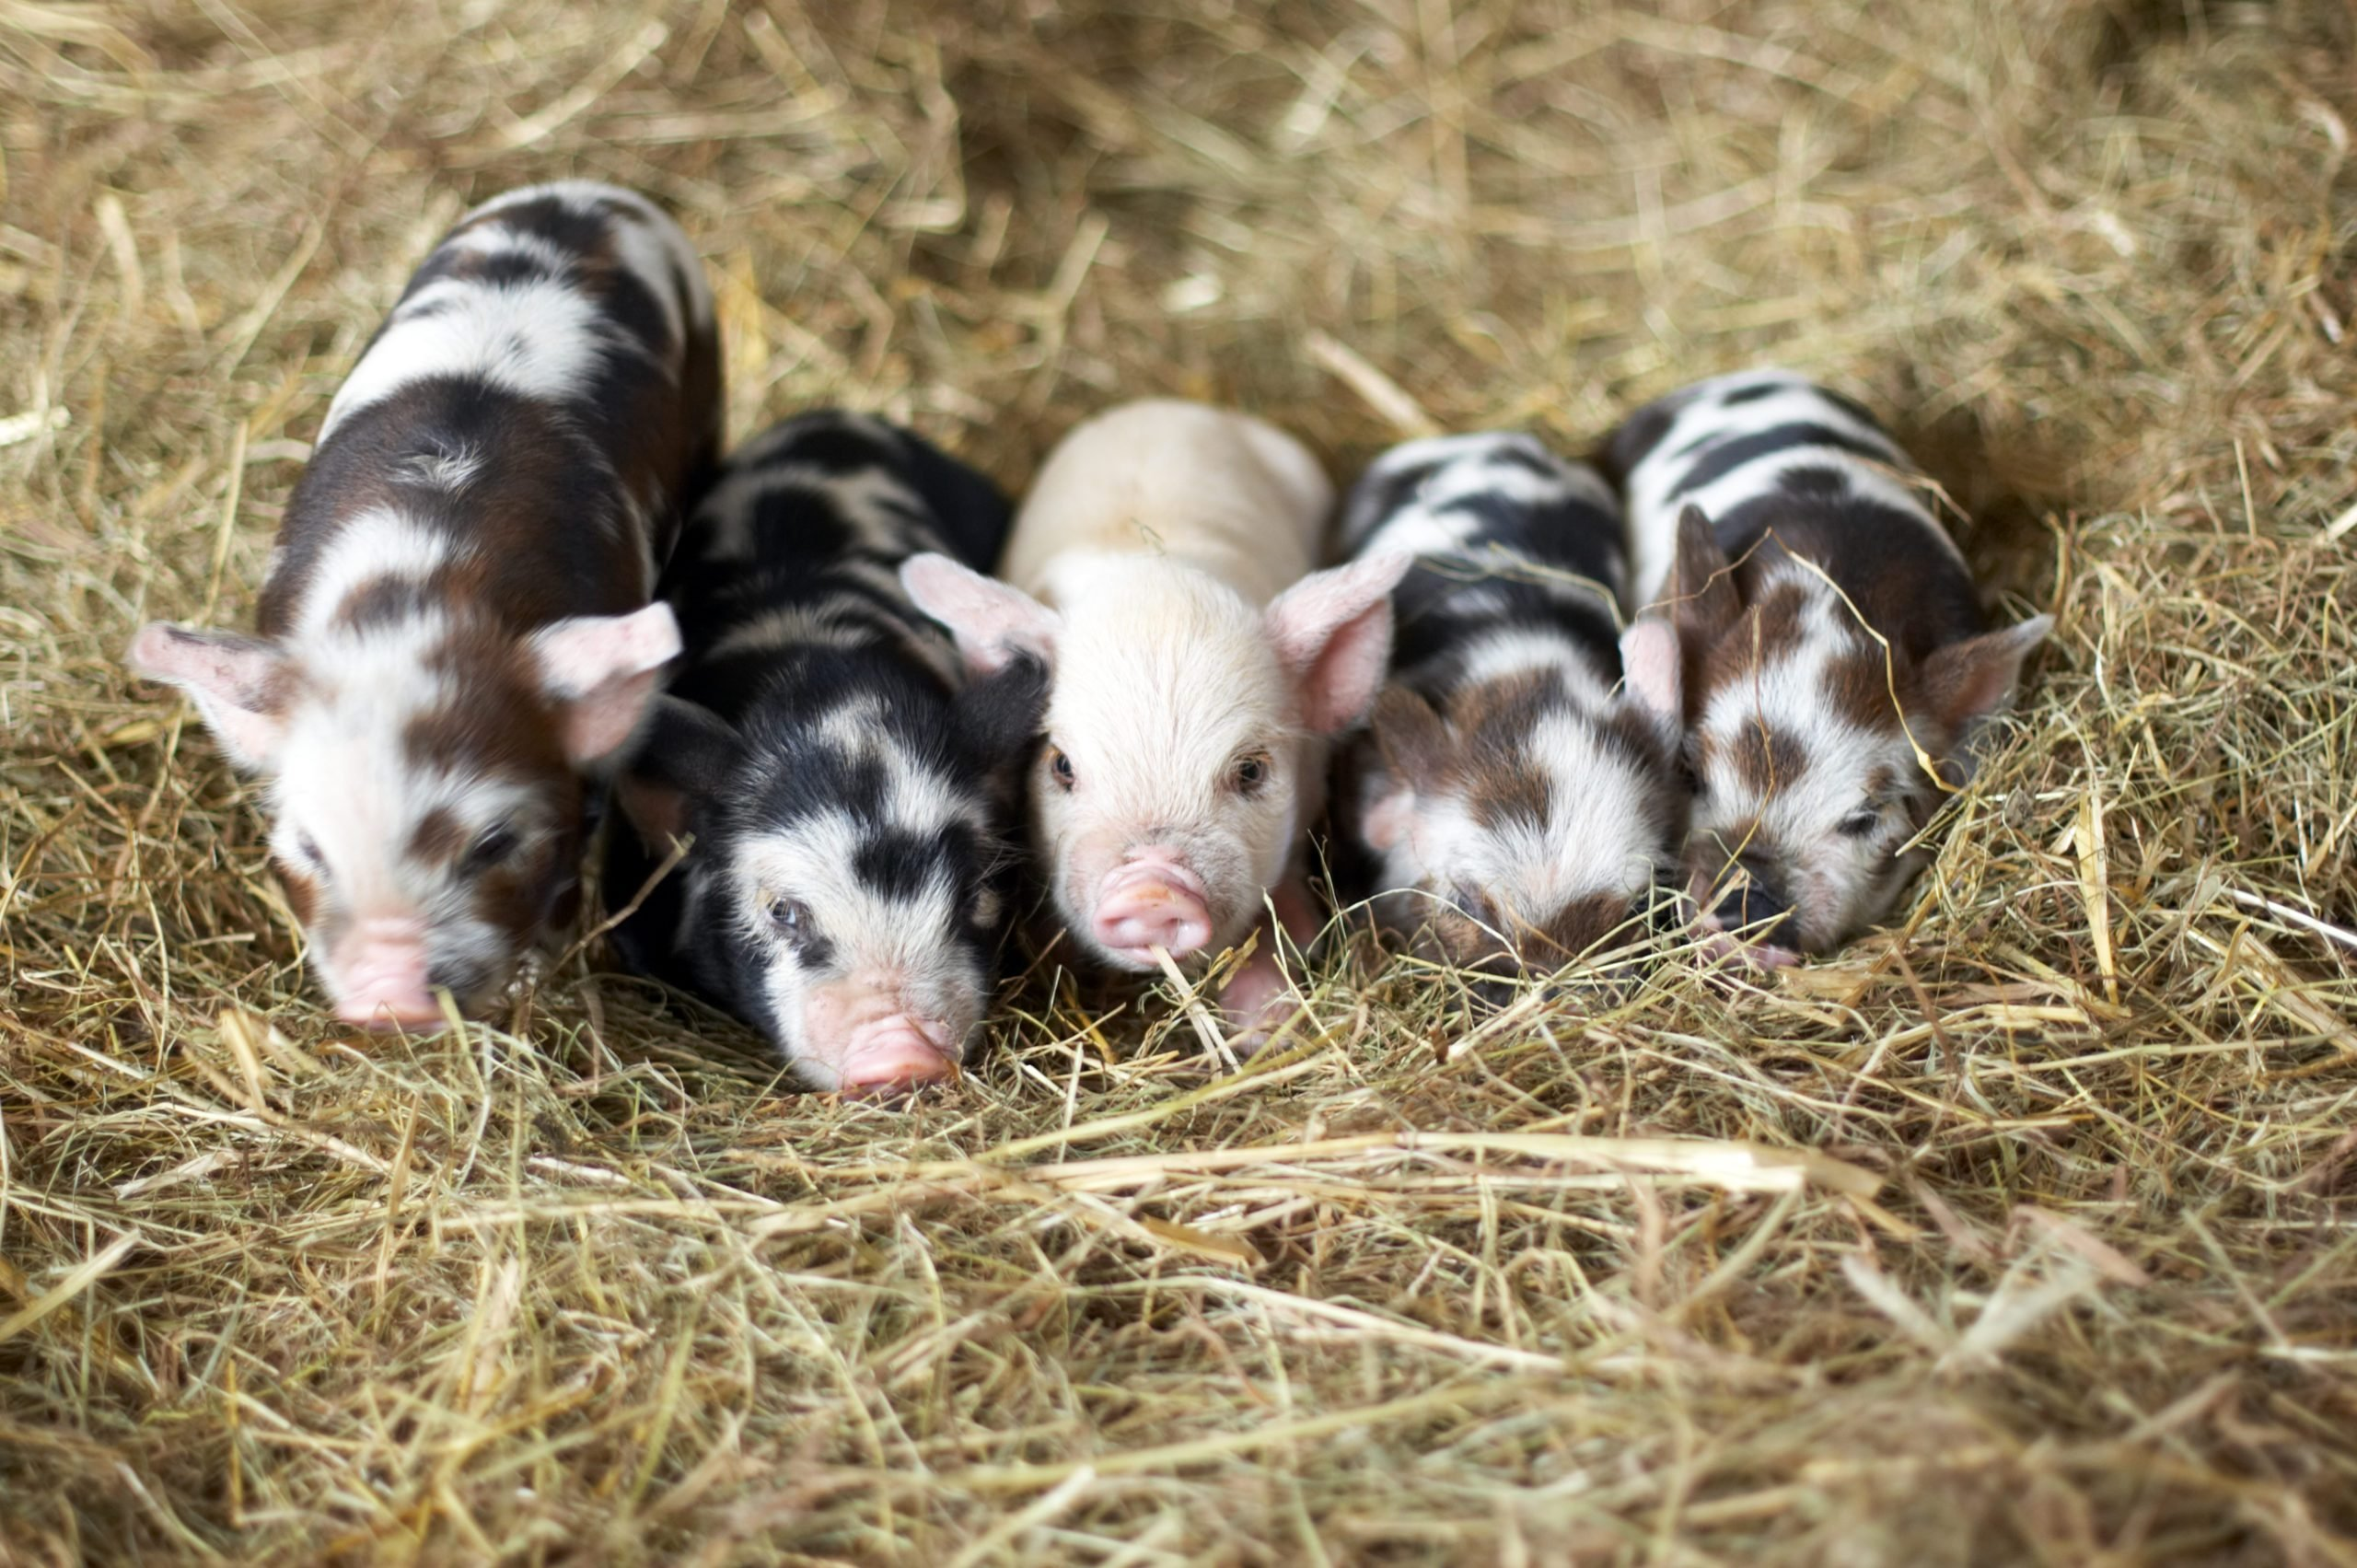 Five piglets laying together in hay